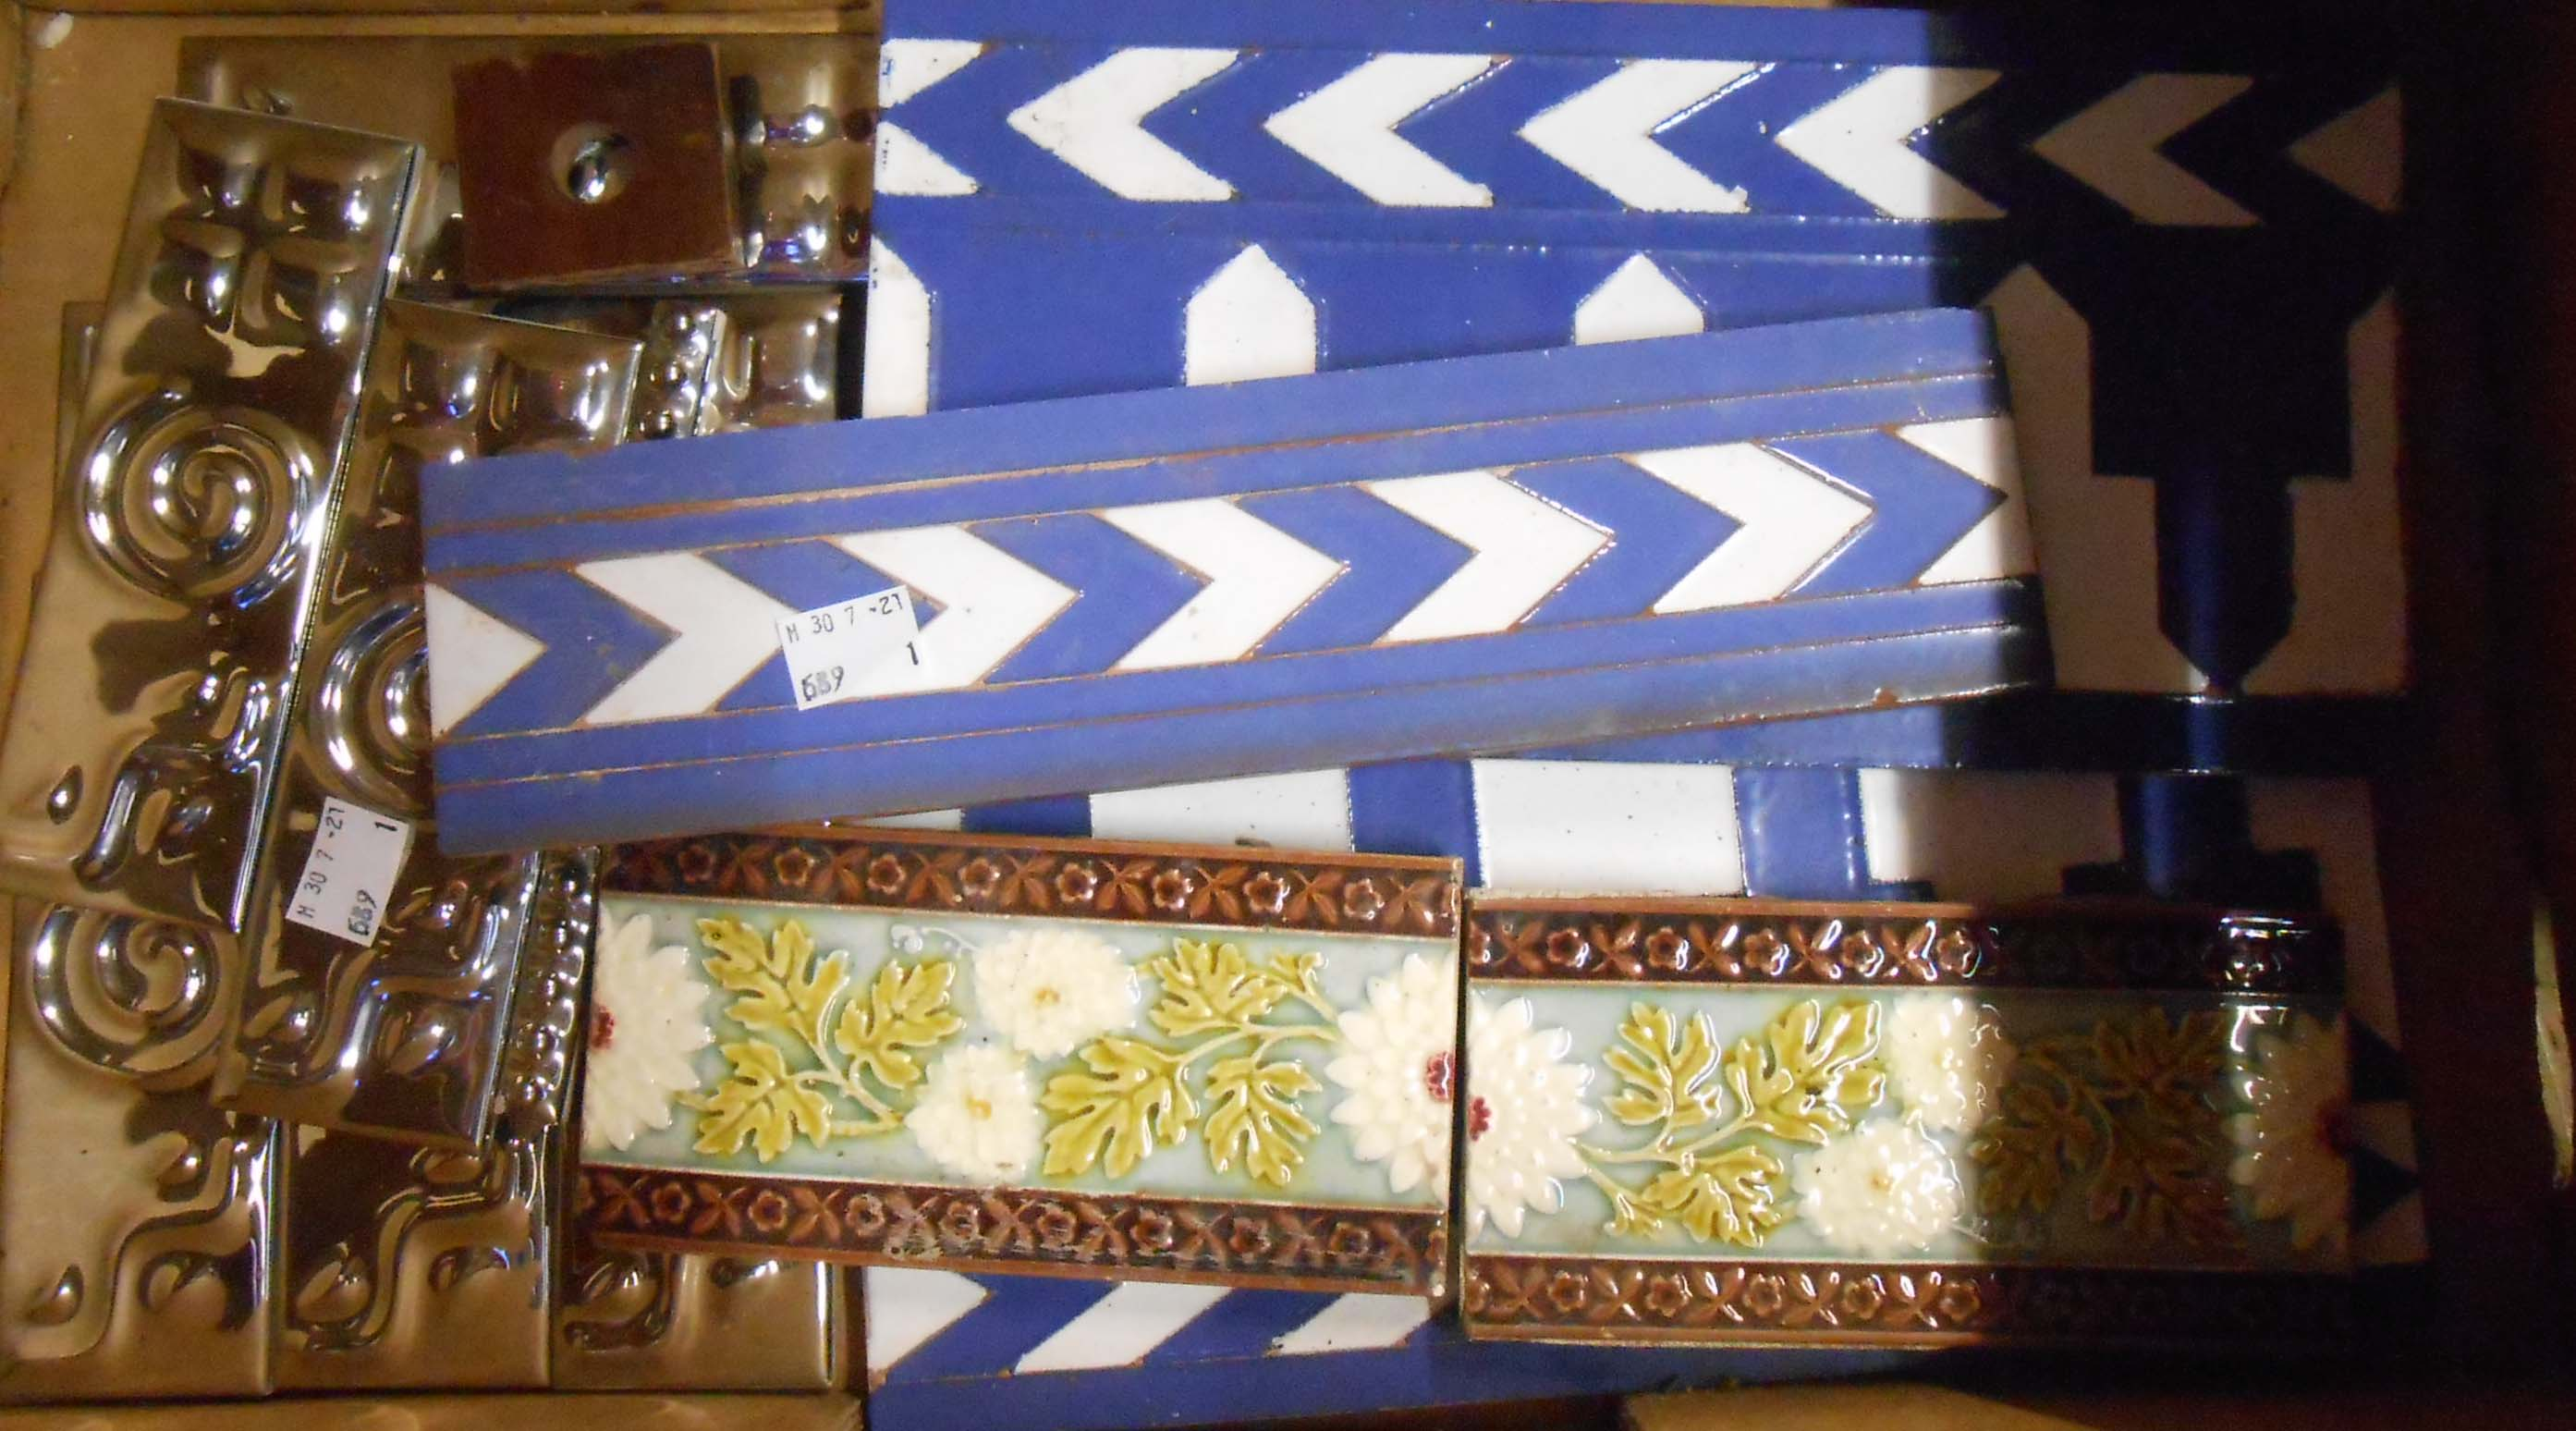 A box containing assorted ceramic fireplace surround tiles